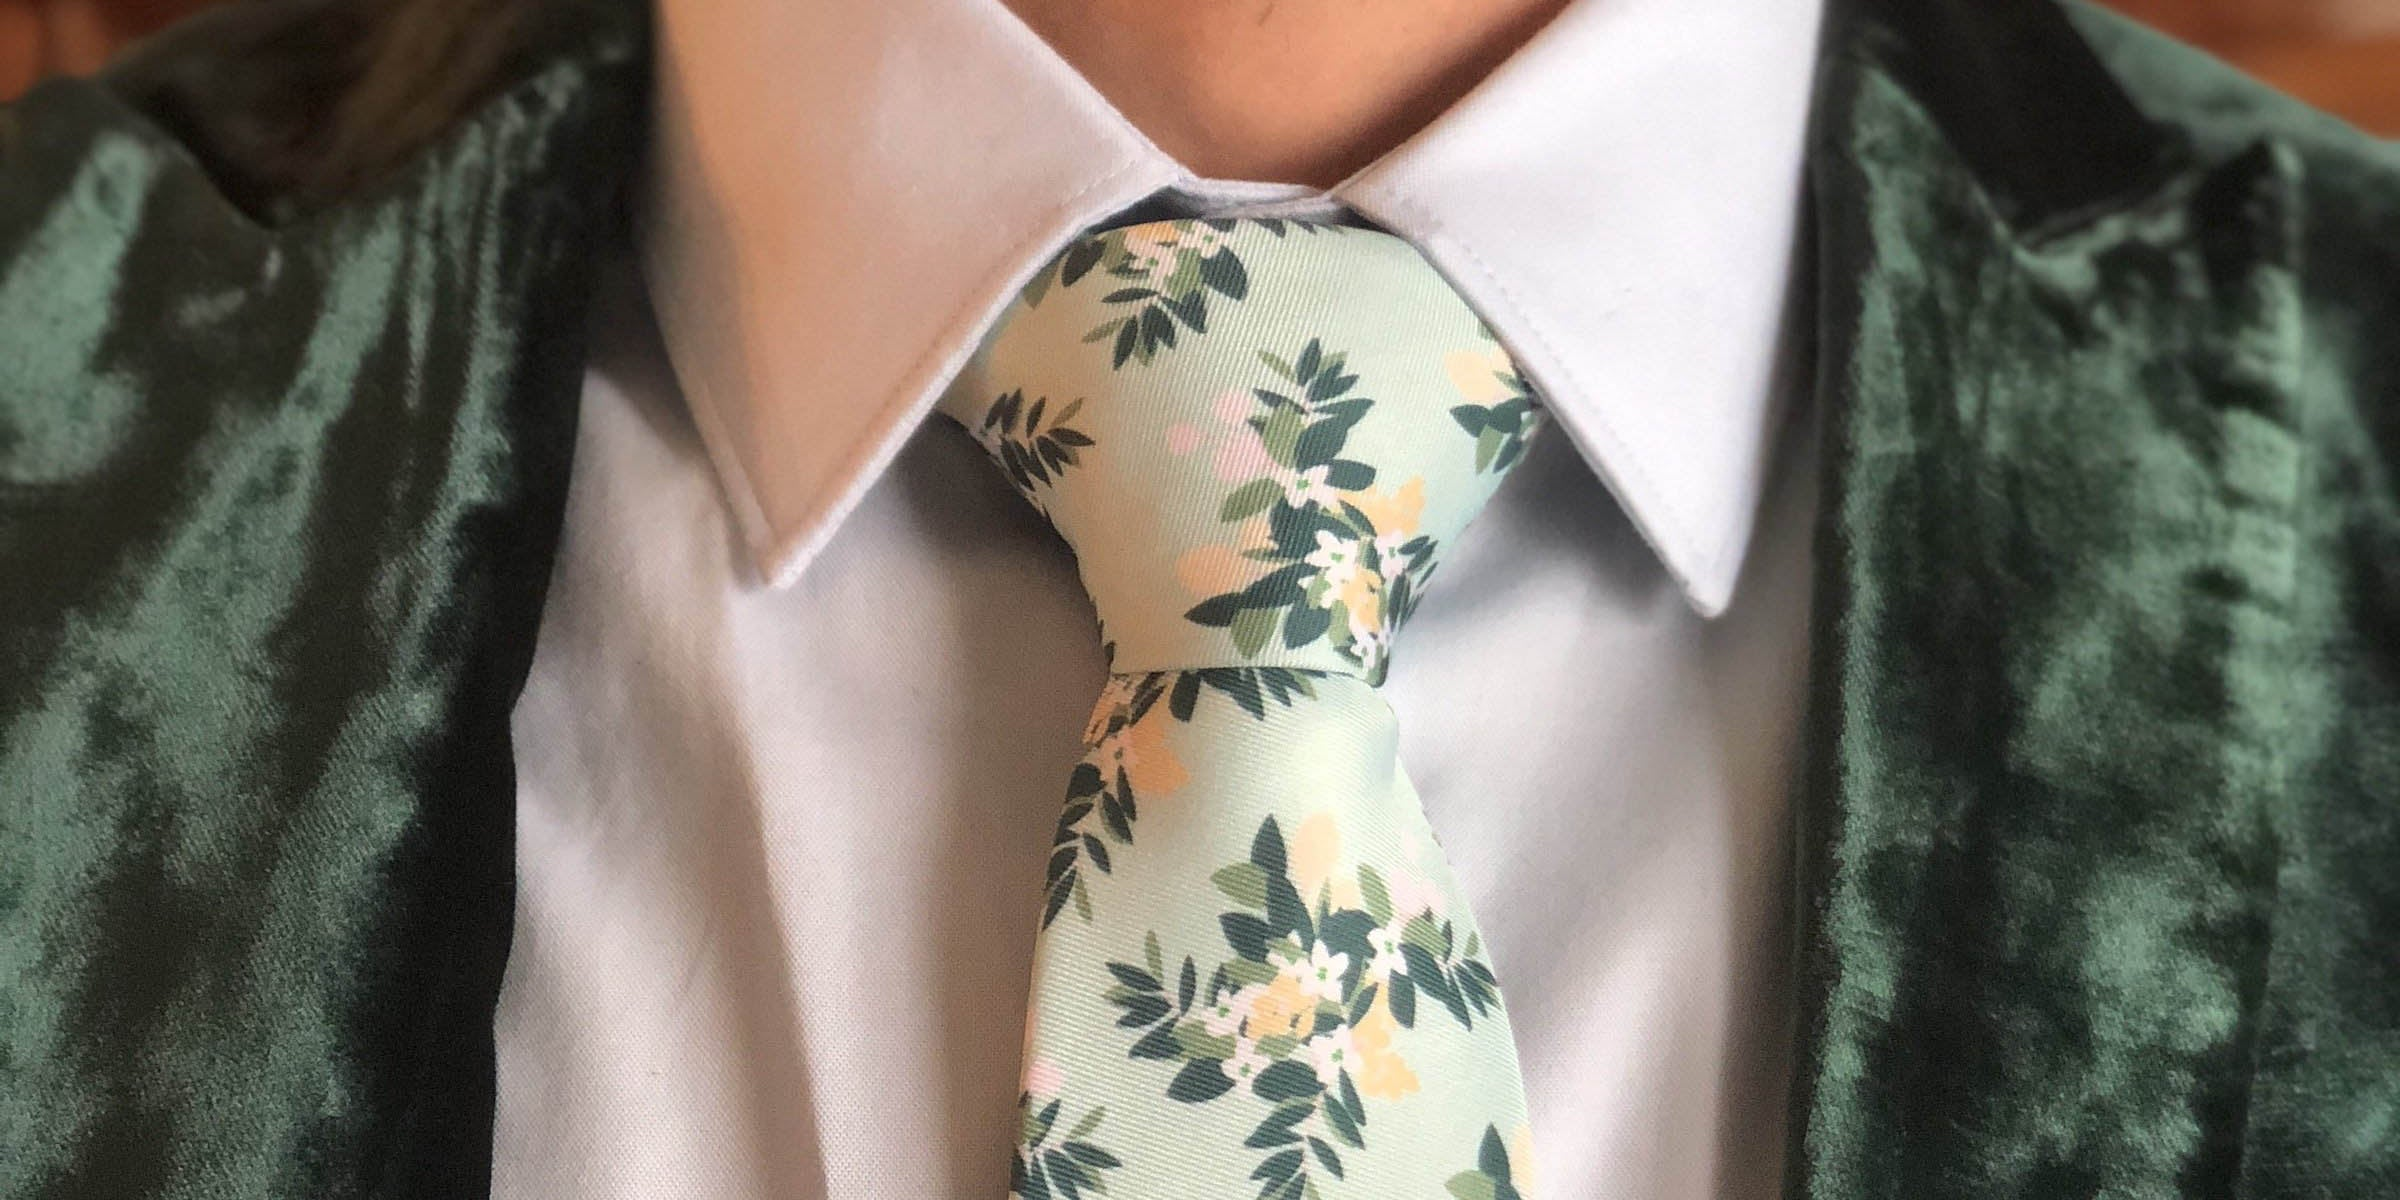 ustom Neckties - No Minimum